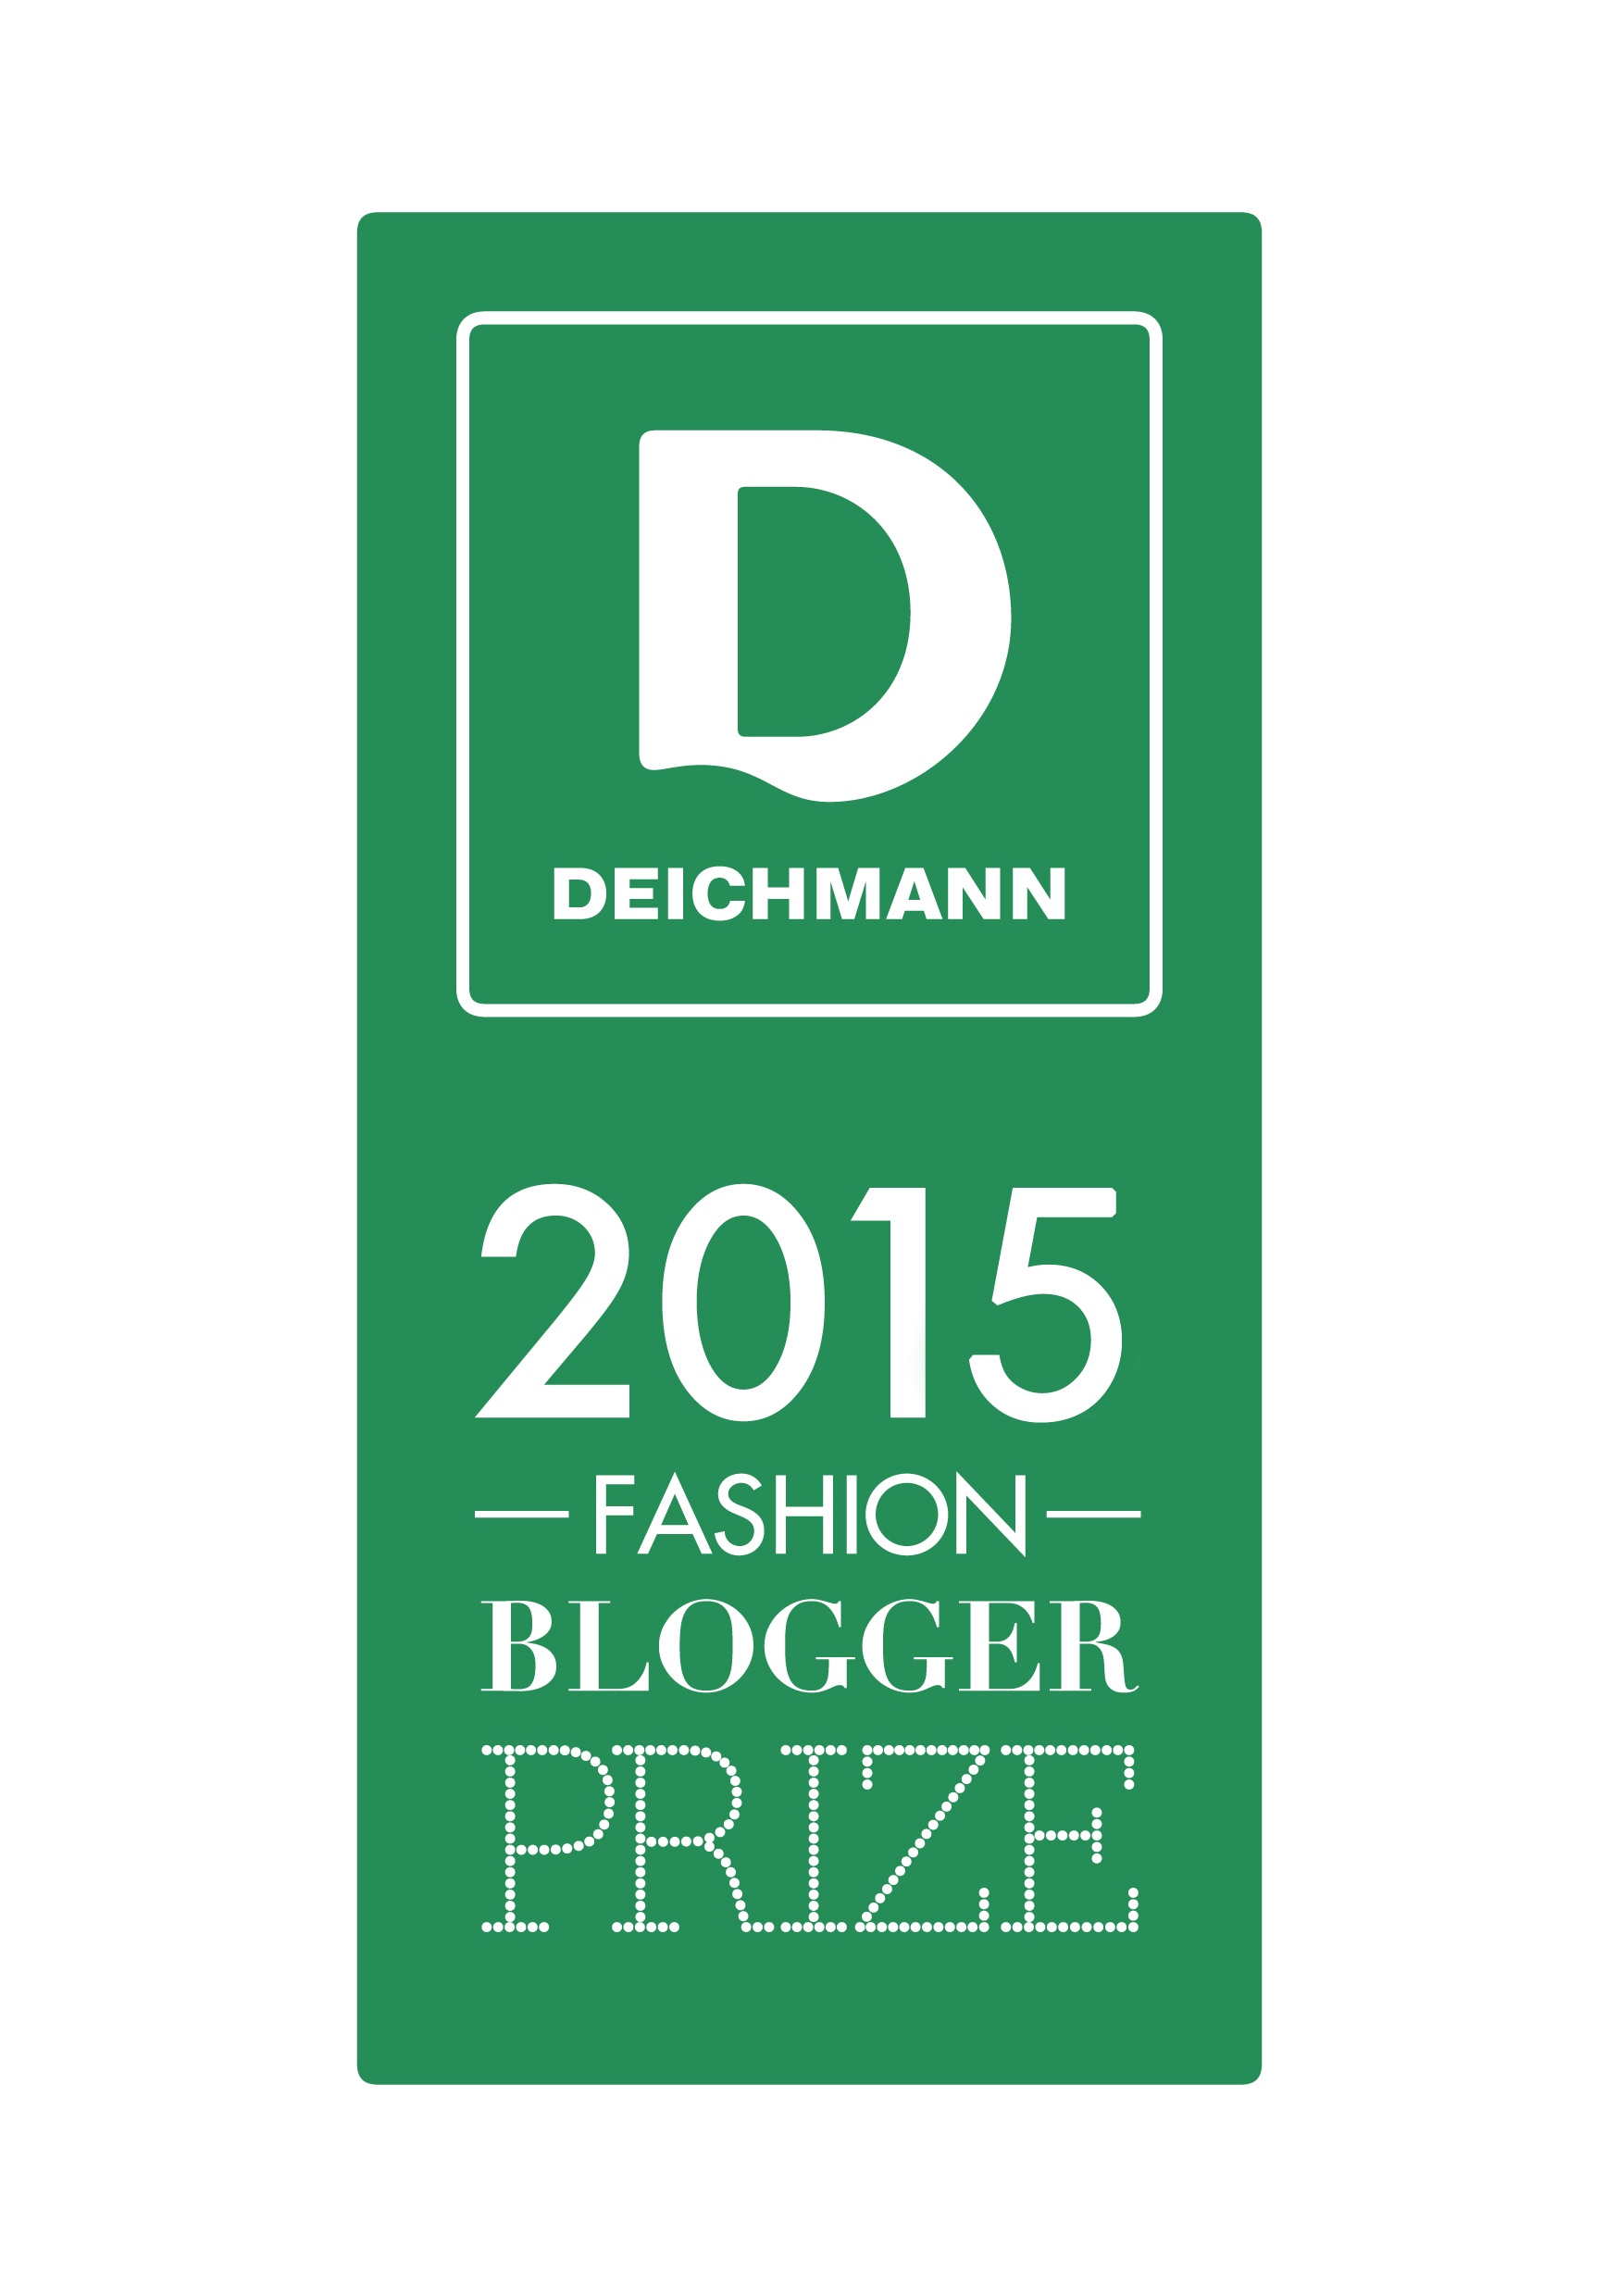 Deichmann fashion blogger prize